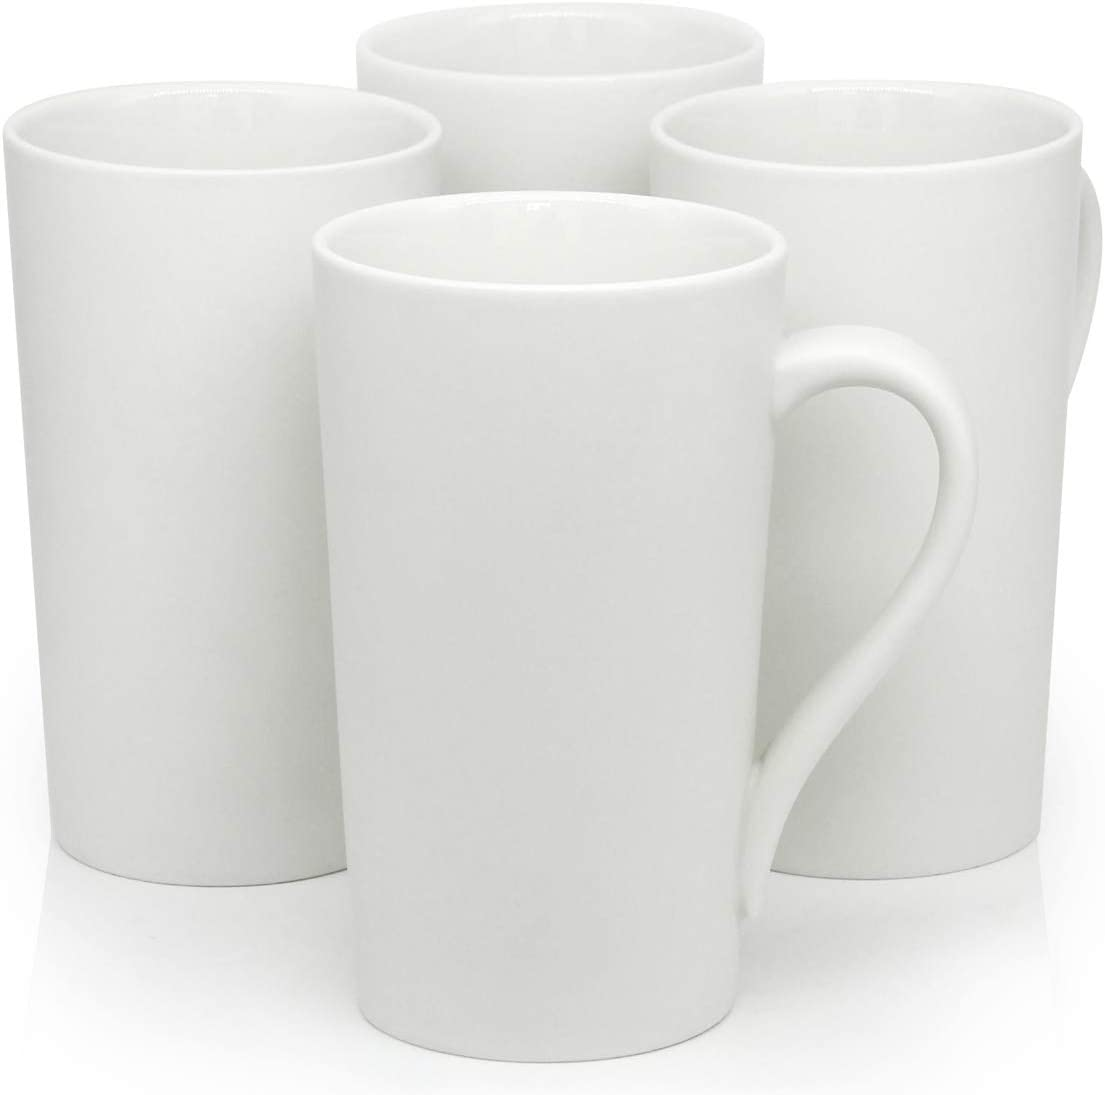 Amazon Com 20 Oz Large Coffee Mugs Smilatte M007 Plain Blank Tall Ceramic Cup With Handle For Dad Men Set Of 4 White Kitchen Dining